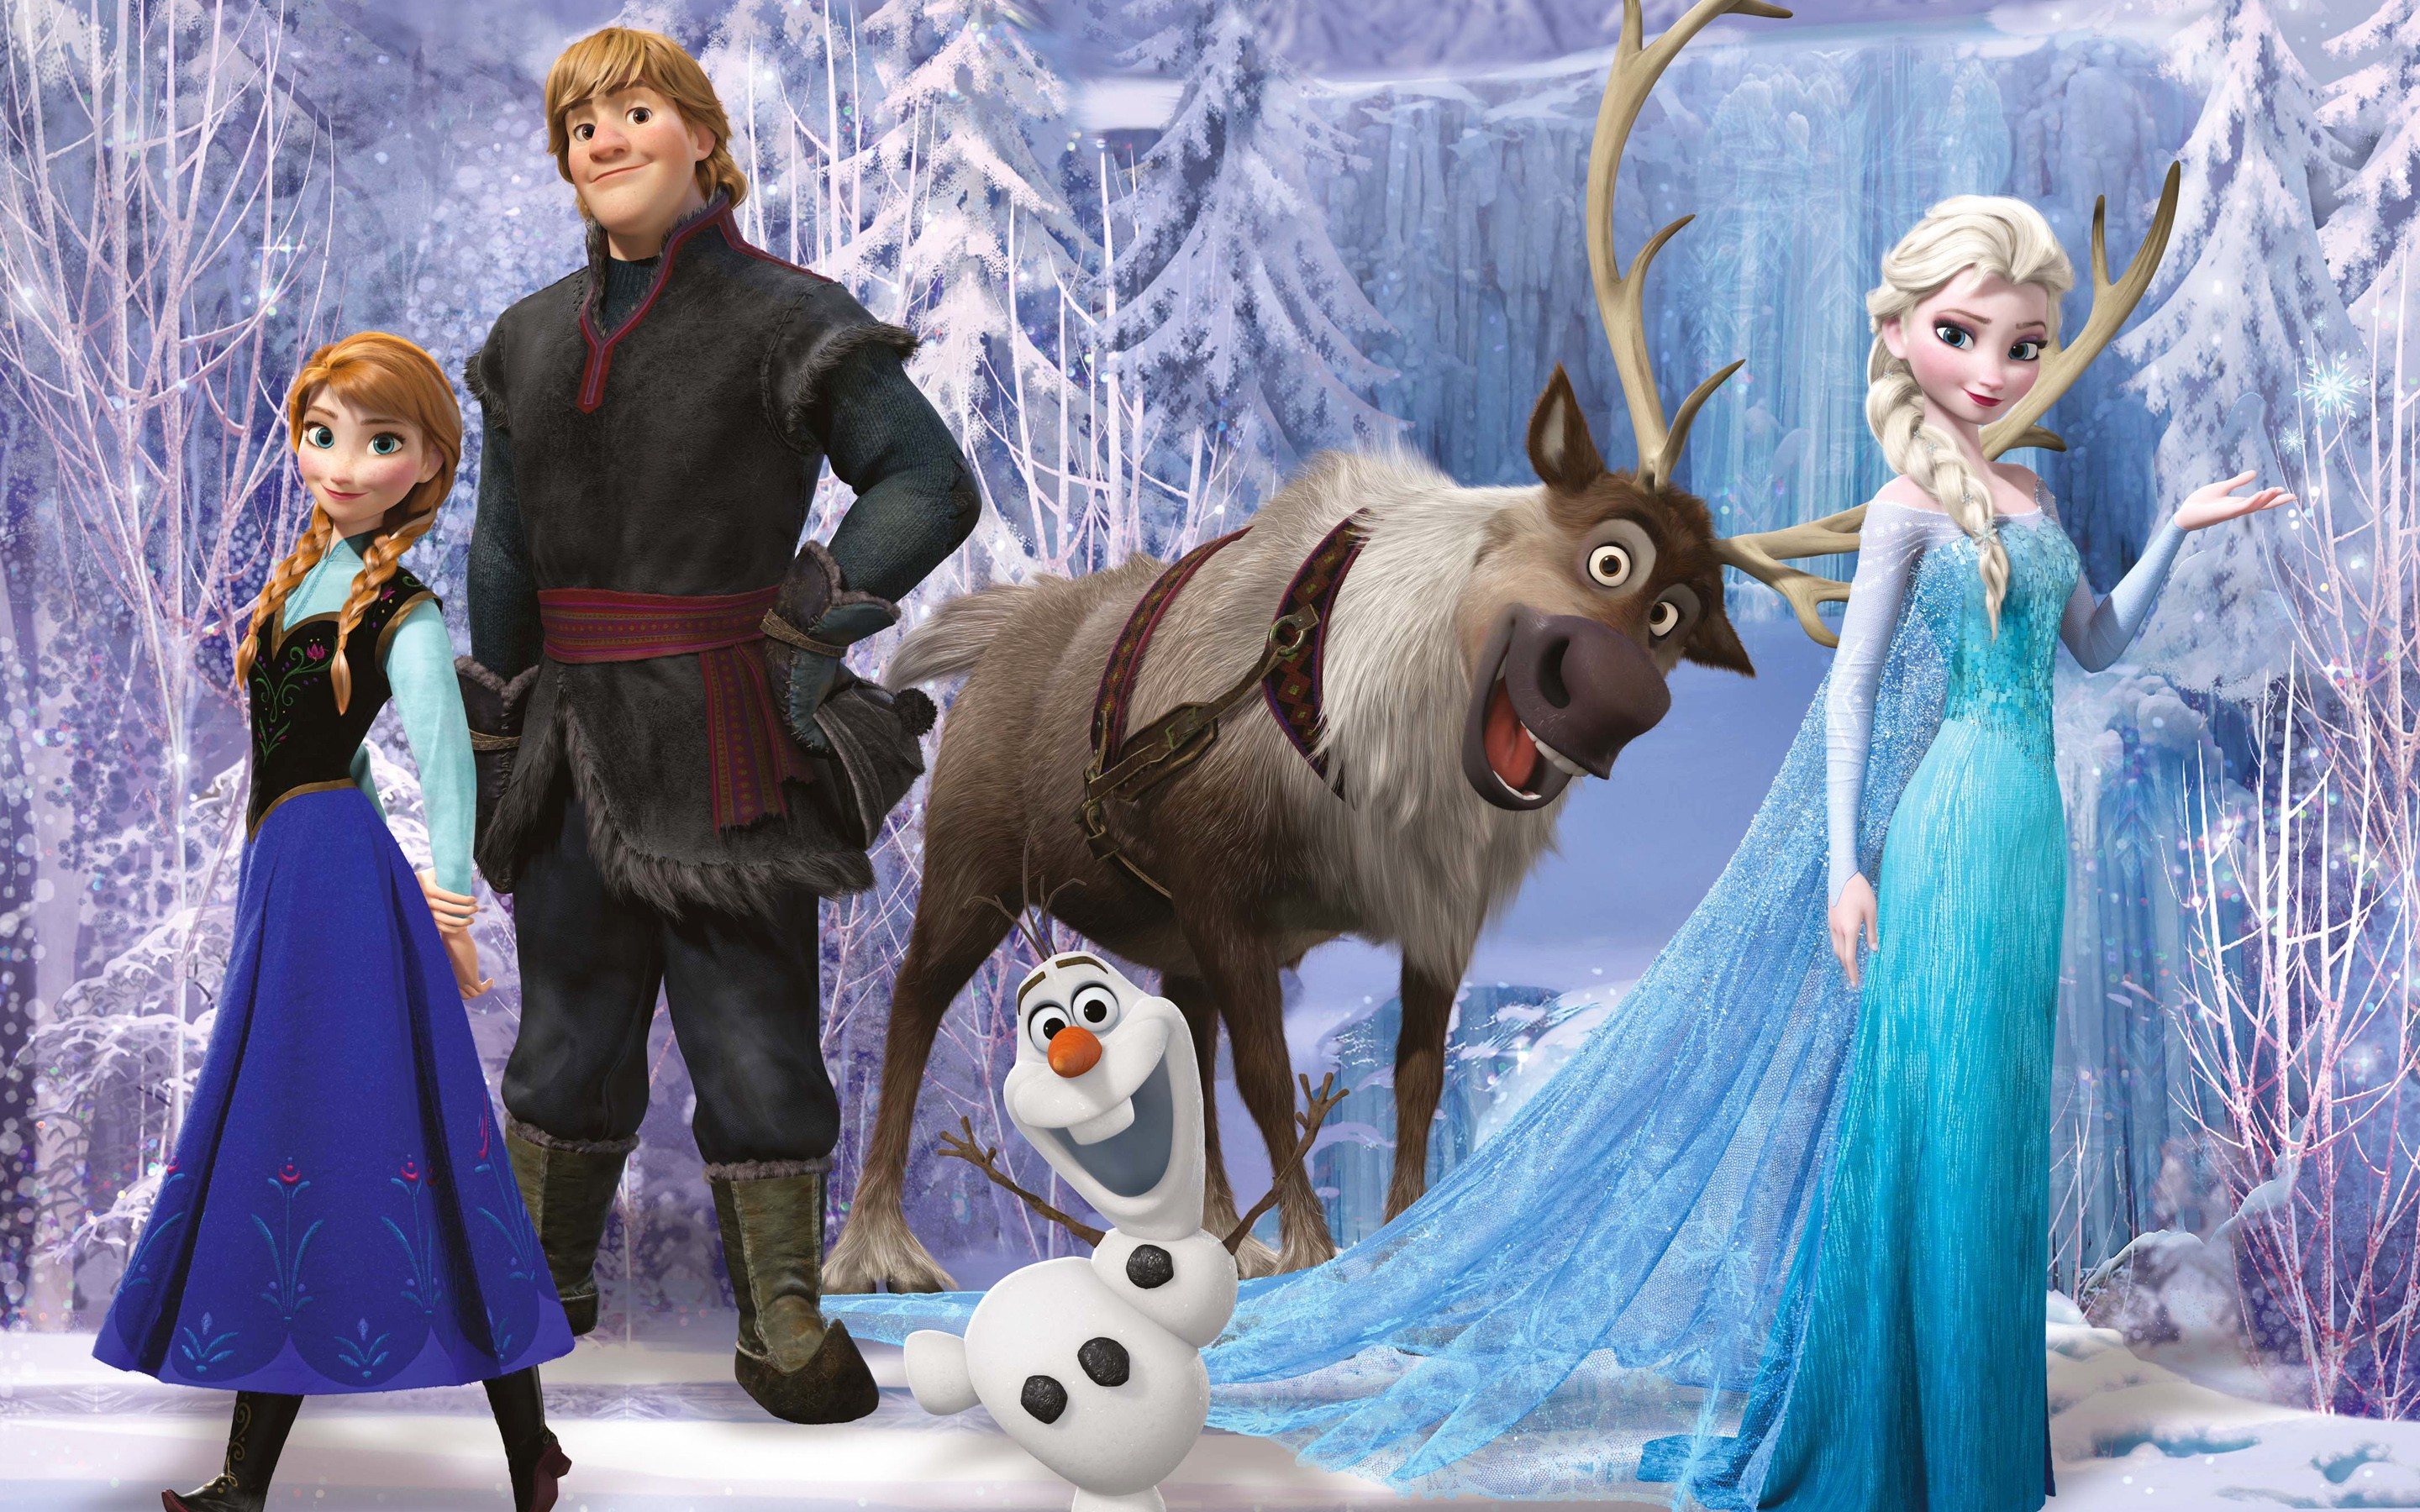 1360x768 frozen movie 2 laptop hd hd 4k wallpapers, images